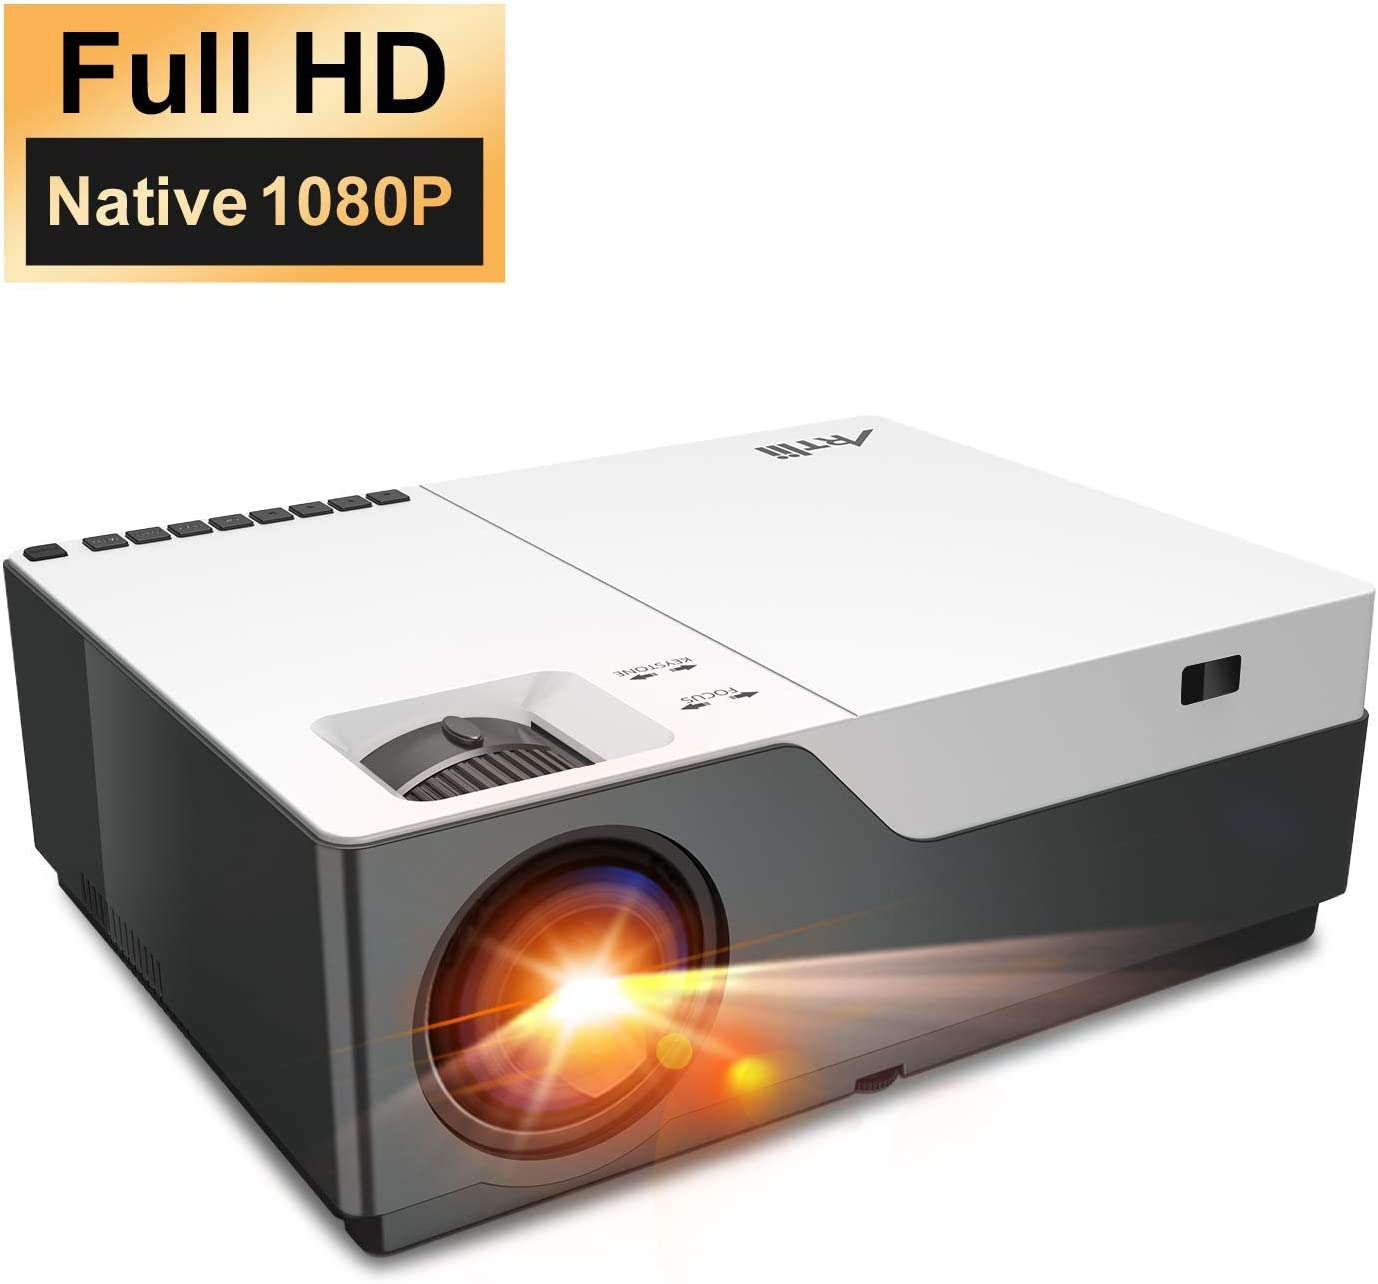 Projector, Artlii Full HD 1080P Projector Support 4K, 6500 lumens 300